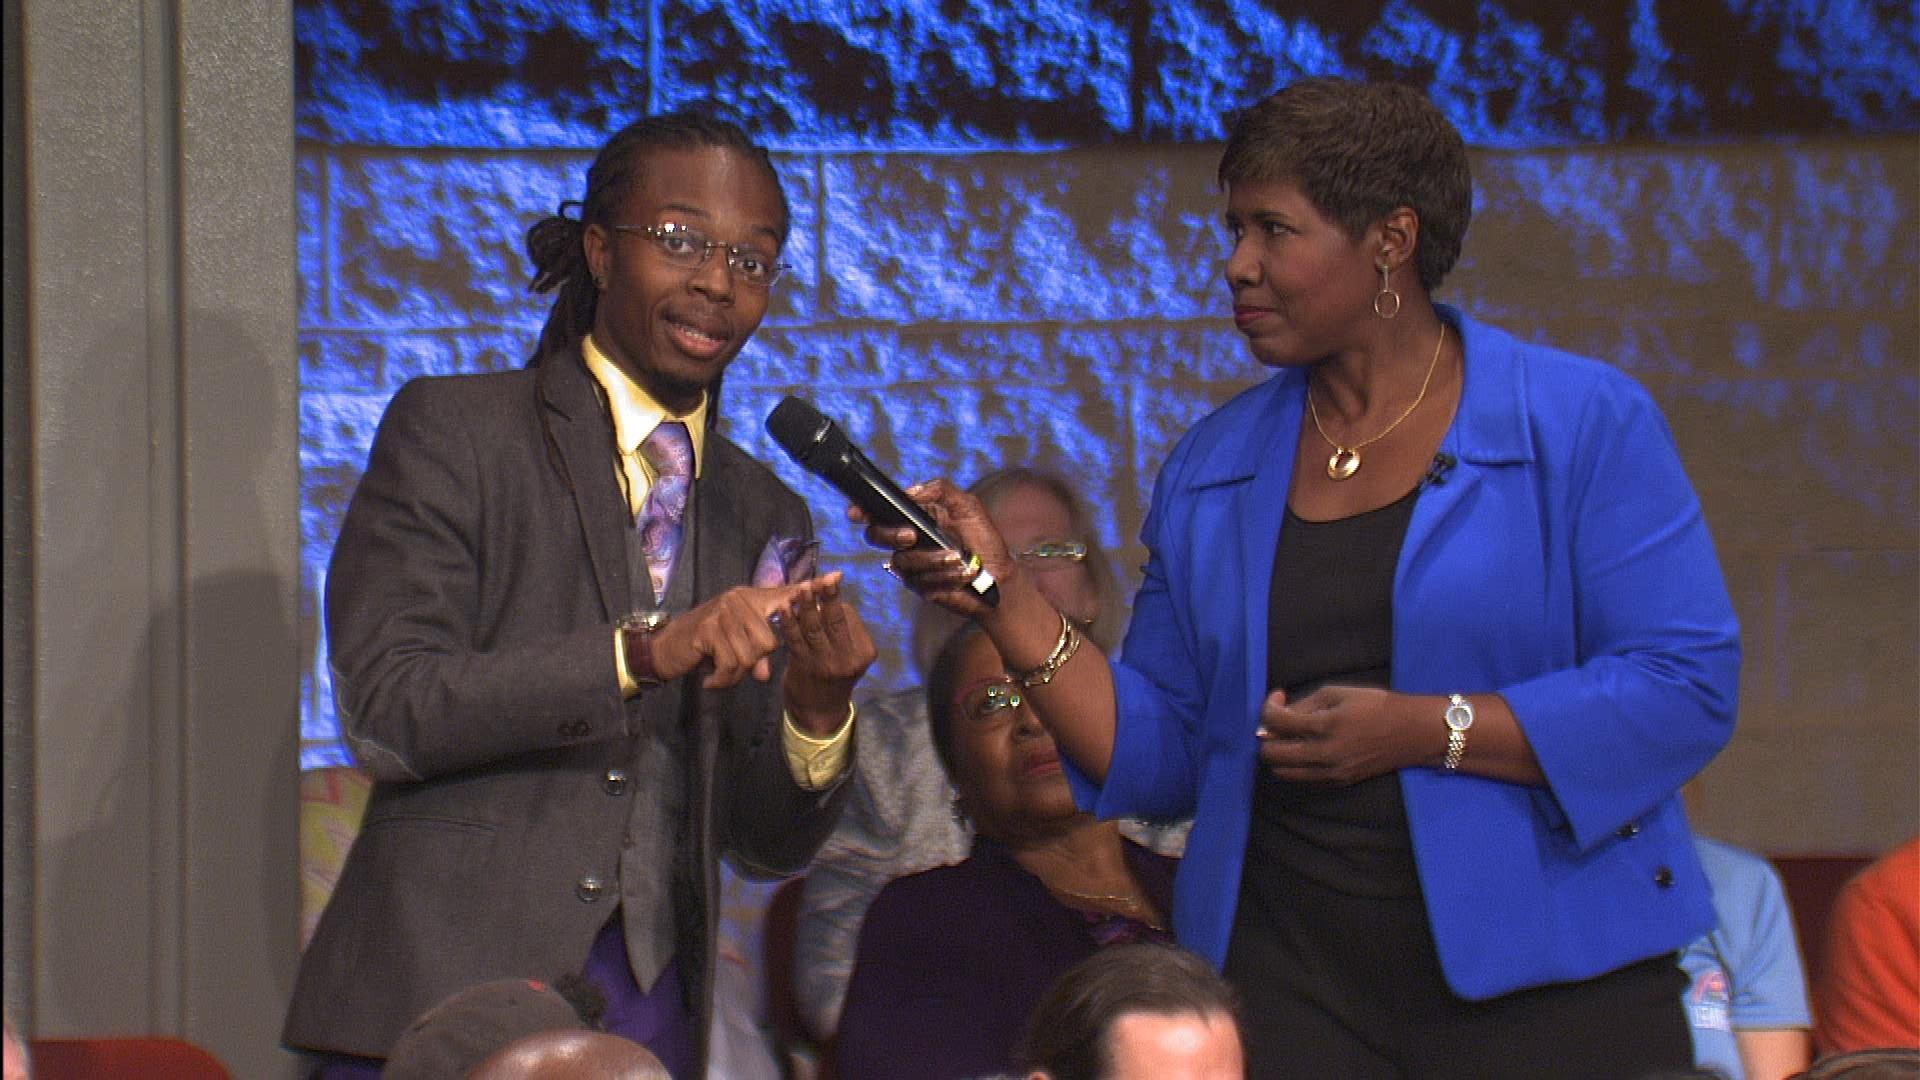 Q&A with Gwen Ifill on Race in America